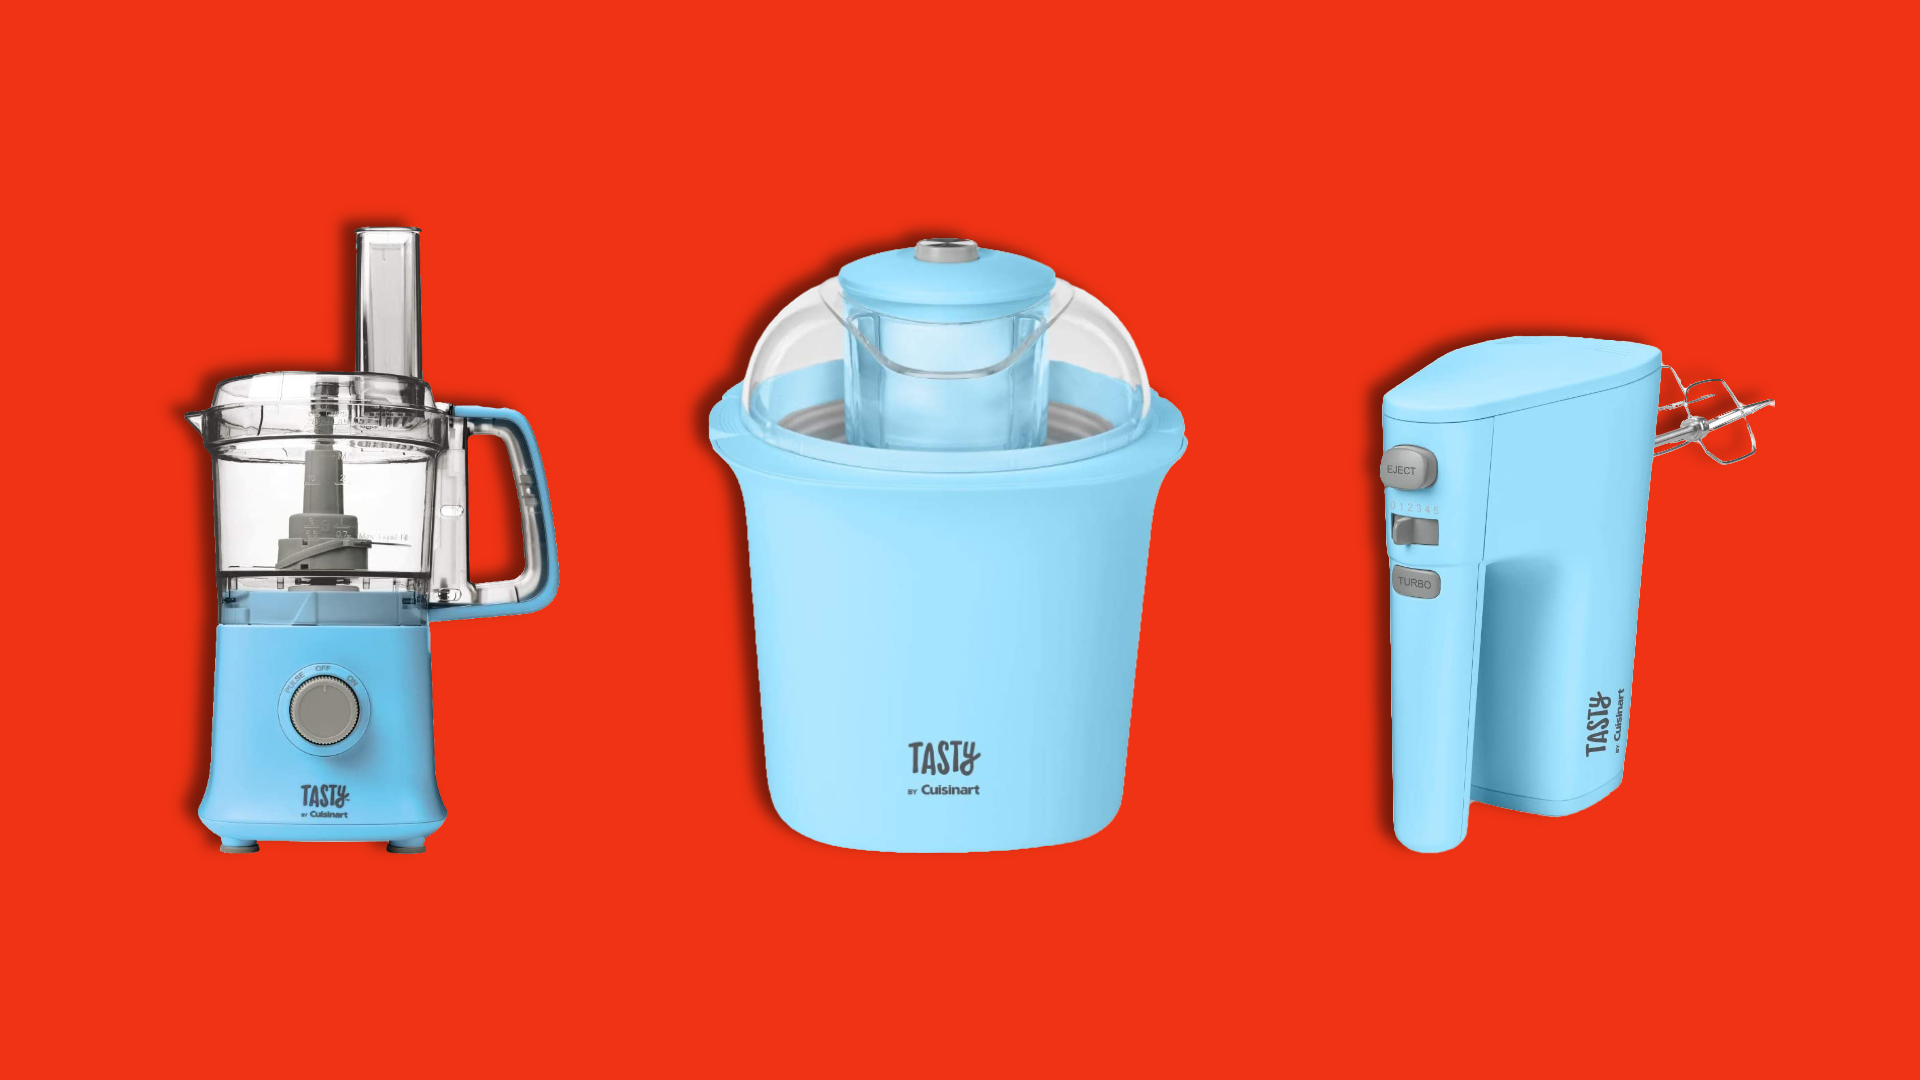 Blue kitchen appliances on a red background.